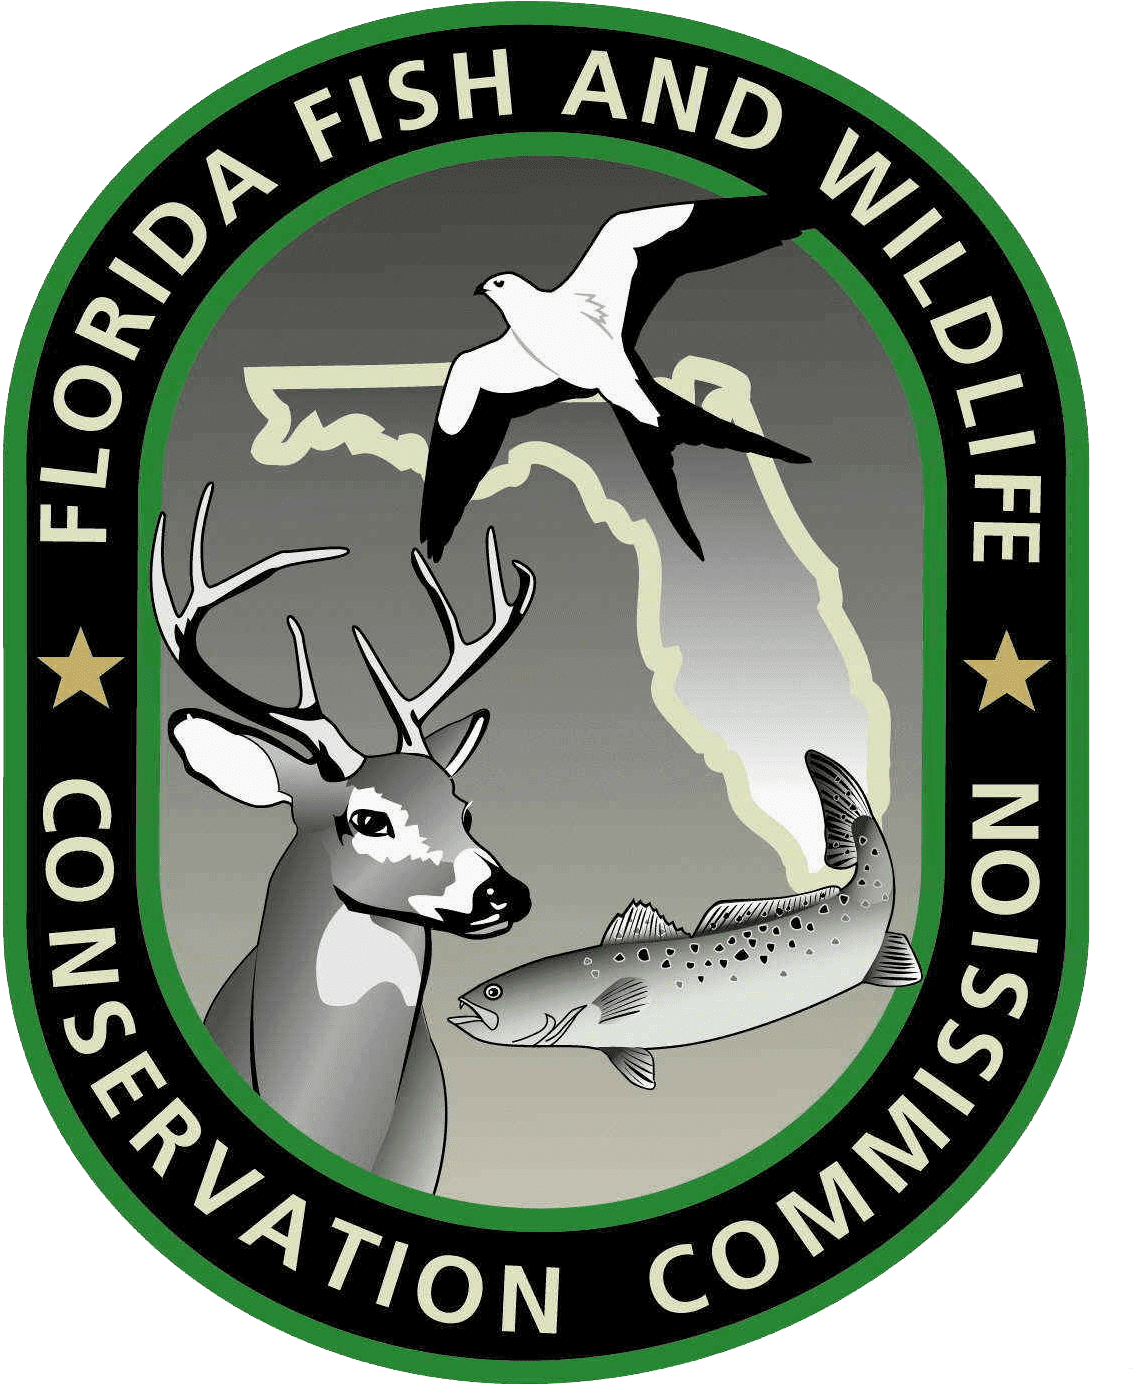 496-4968584_fwc-logo-copy-florida-fish-and-wildlife-conservation